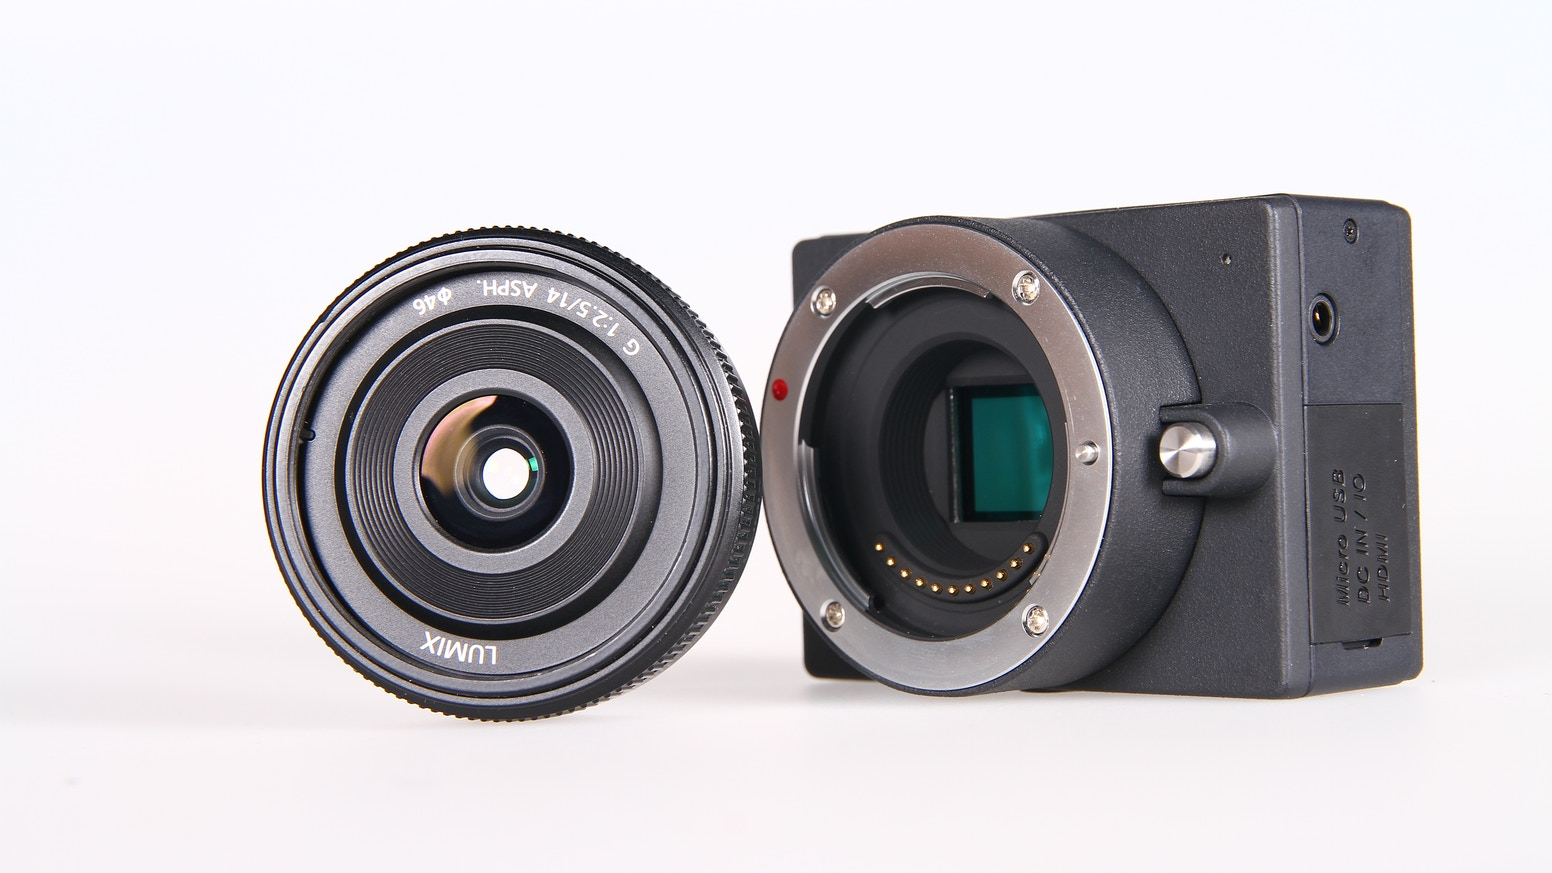 E1 Camera 4k Uhd Interchangeable Lens By Jason Zhang 0in Ultrahd Kamera Action Smallest Form Factor Supports All Panasonic Olympus Mft Lenses And